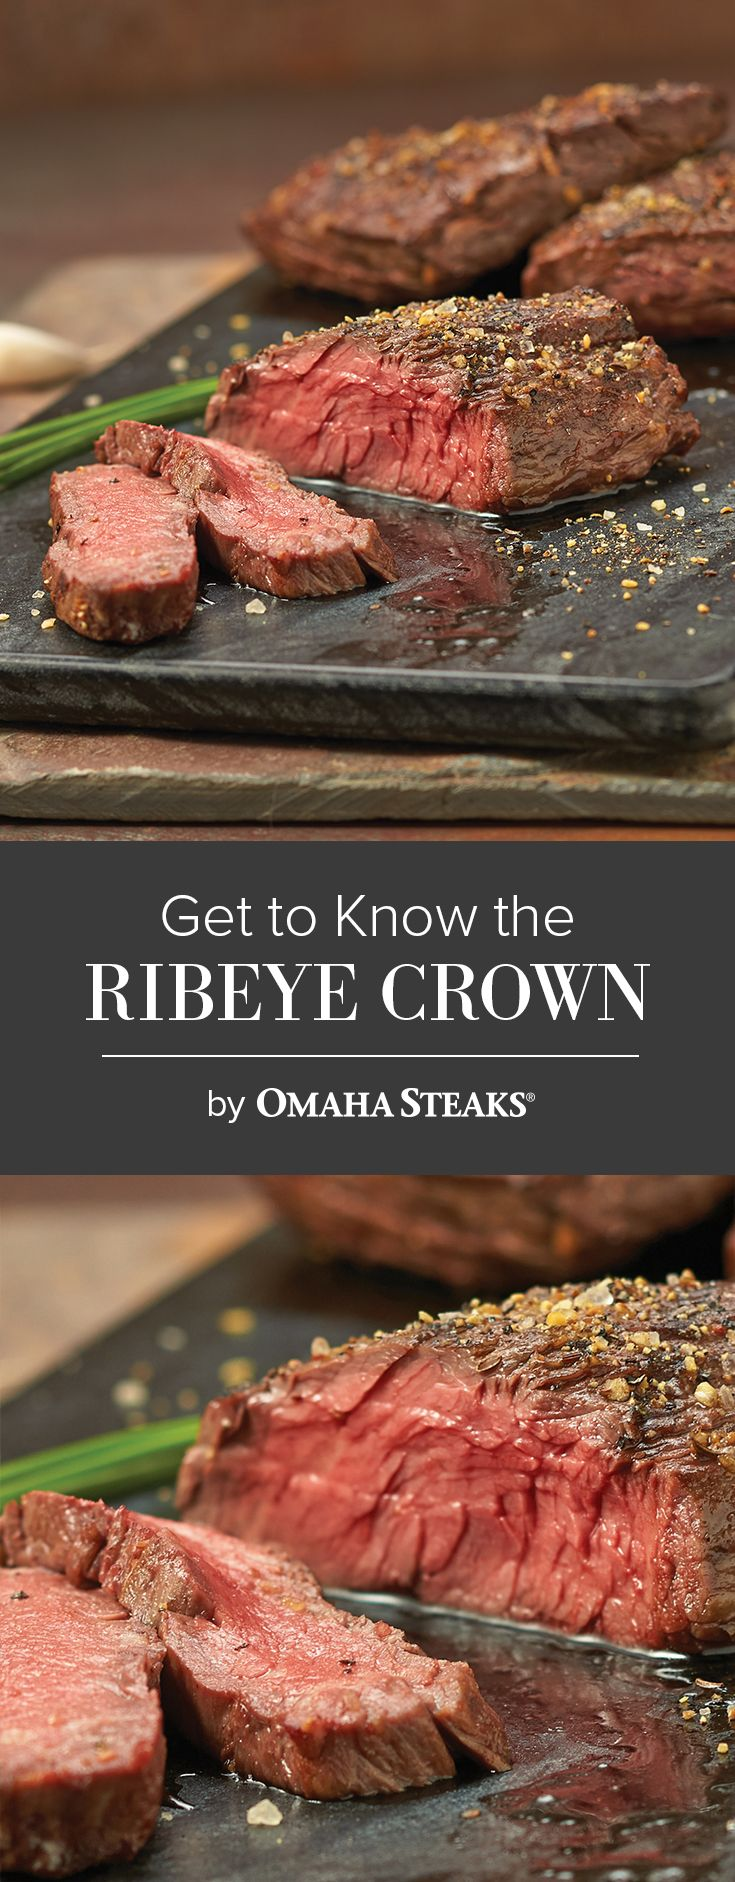 Get To Know The Ribeye Crown Steak Omaha Steaks Products